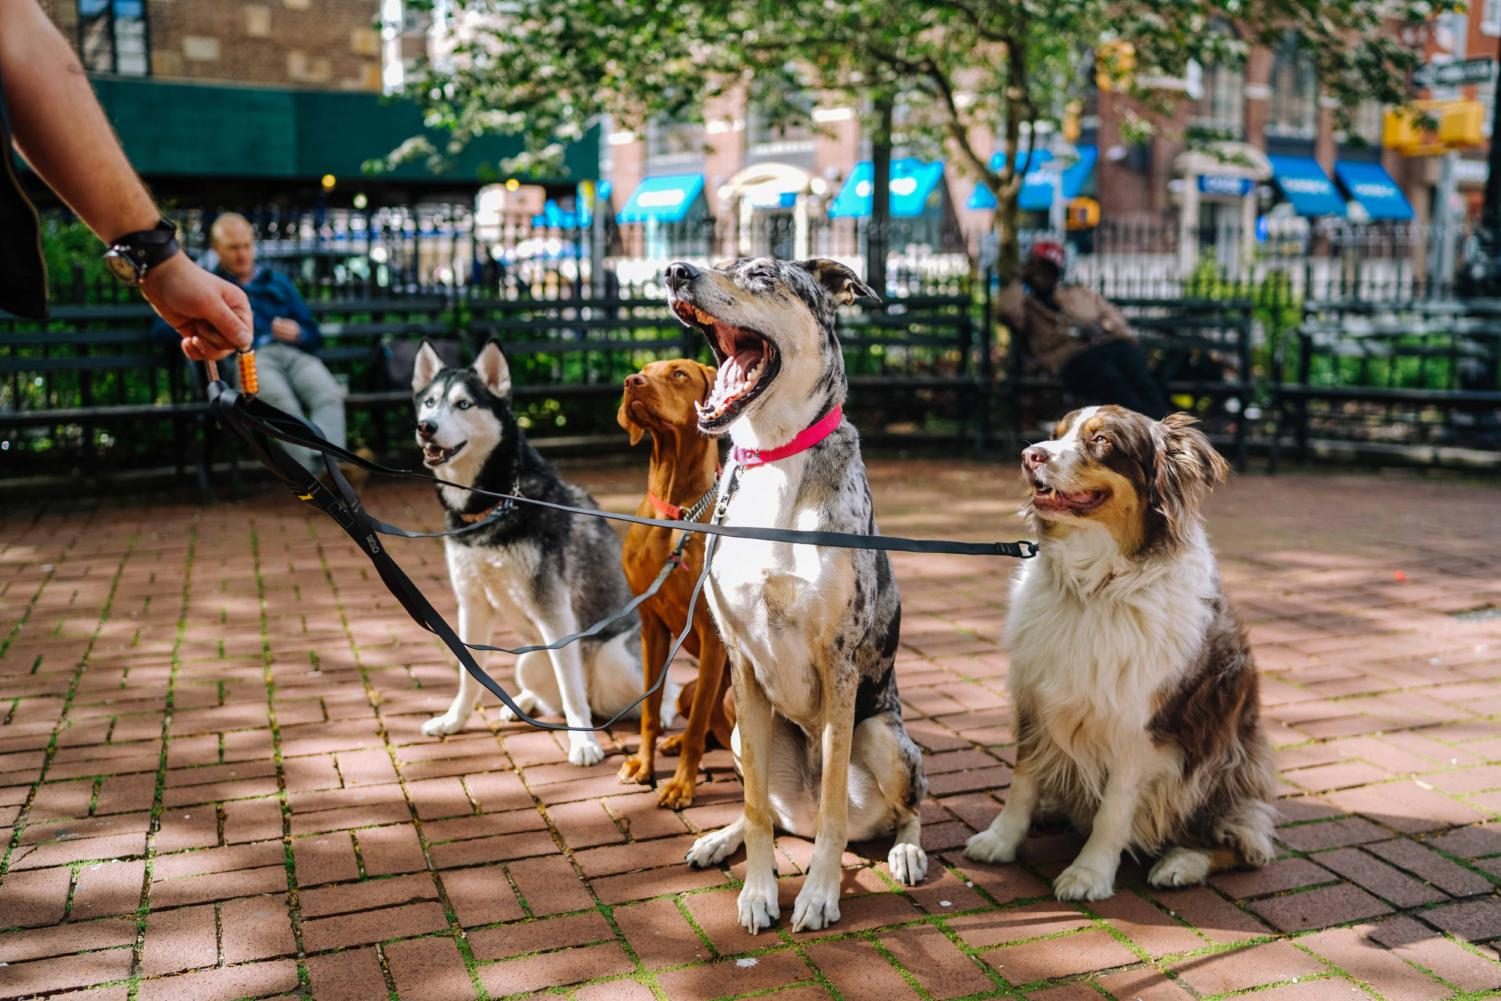 Dogs are some of the animals that need the most help through animal rescue organizations.